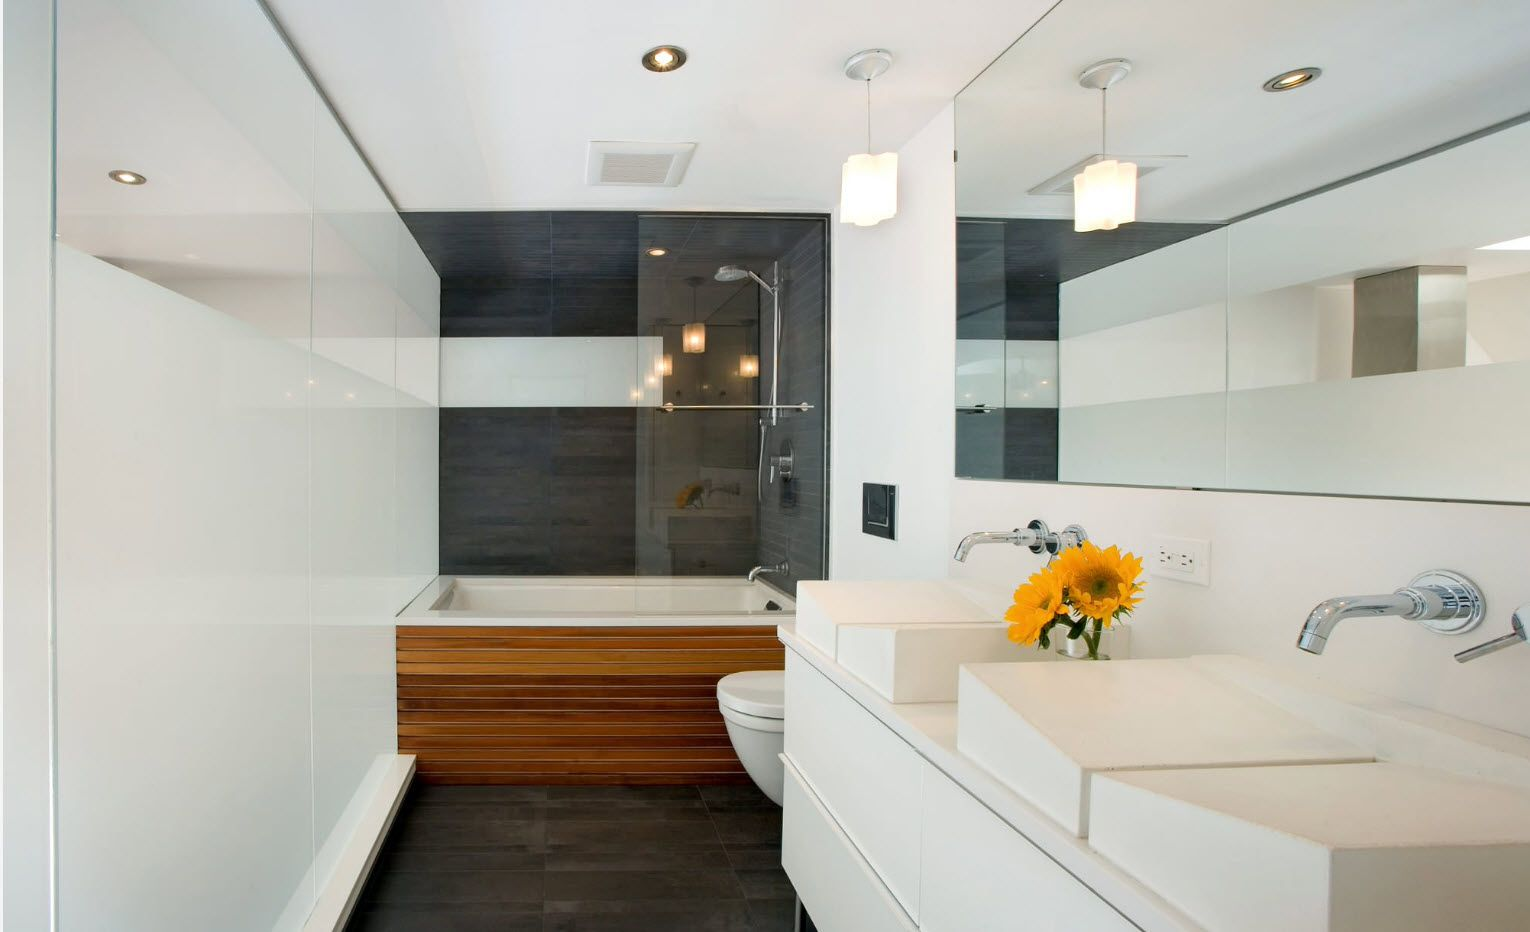 Gray color of the walls and wooden surface of the bathtub